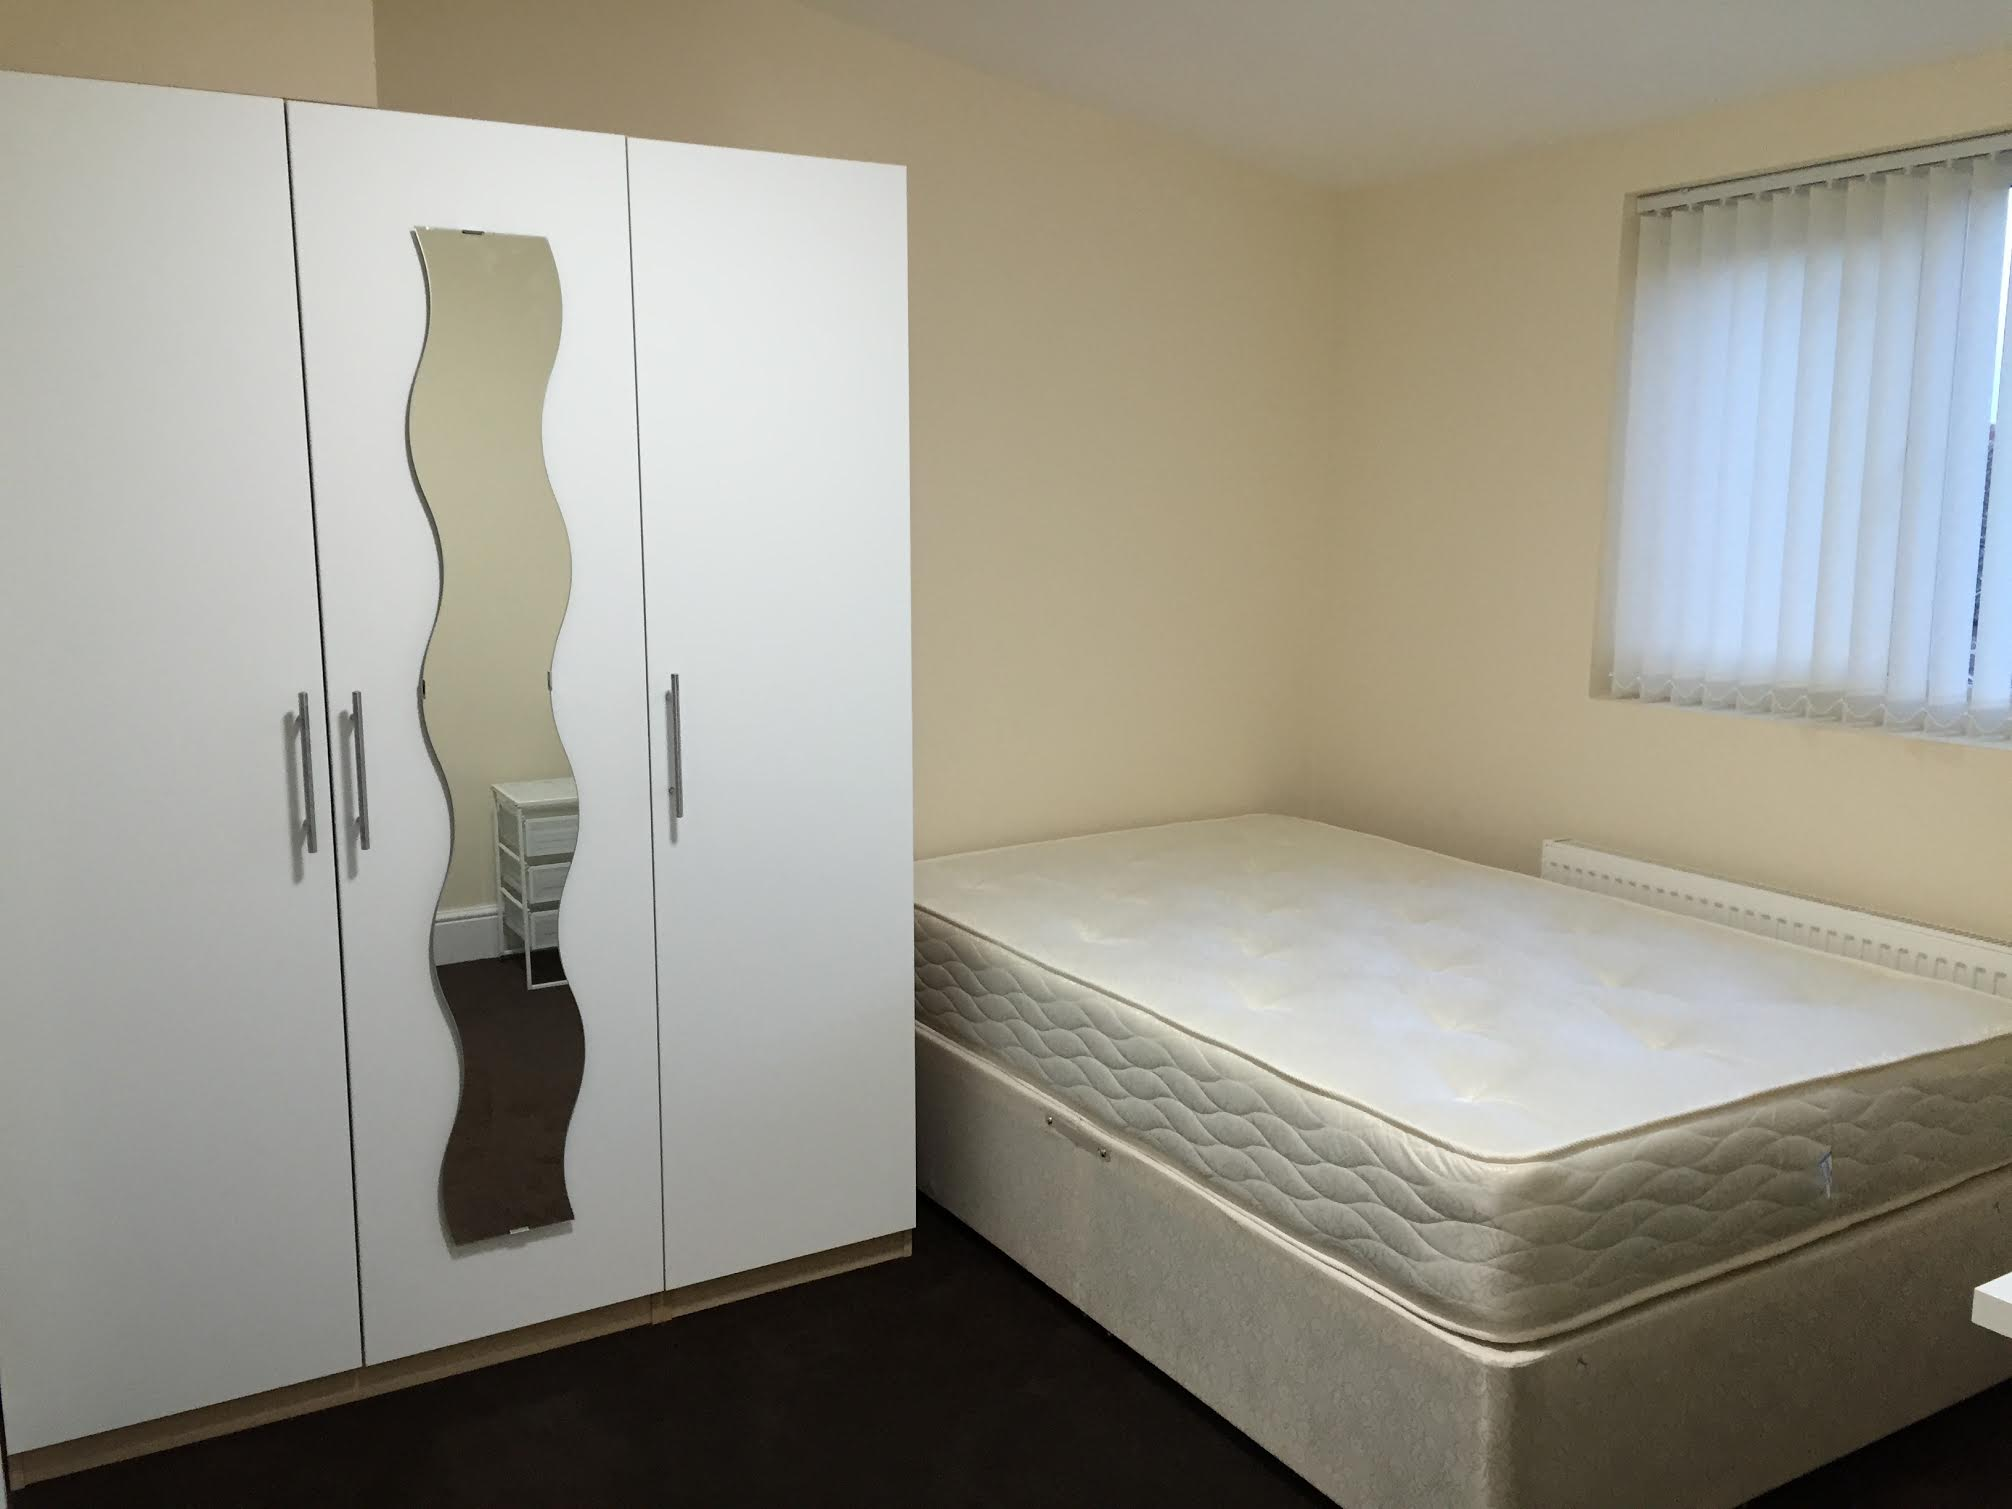 Rent a bed for a week 28 images rent to own bunk beds bunk beds rent to own furniture rent Home furniture rental in uk